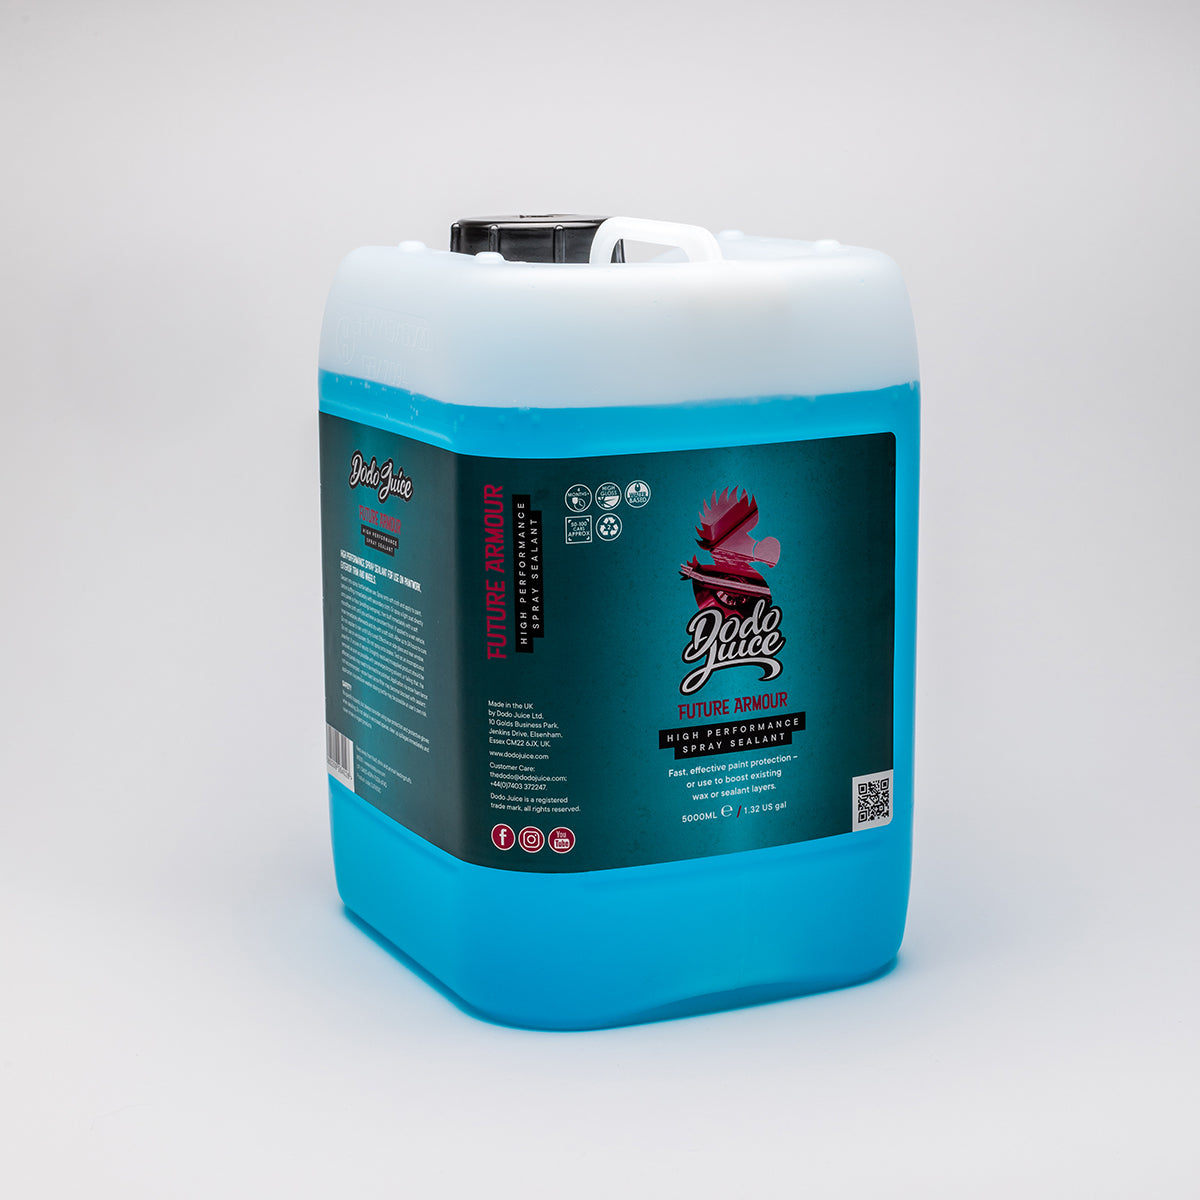 Future Armour 500ml/5 litres - high-performance nano spray sealant (wet or dry application)